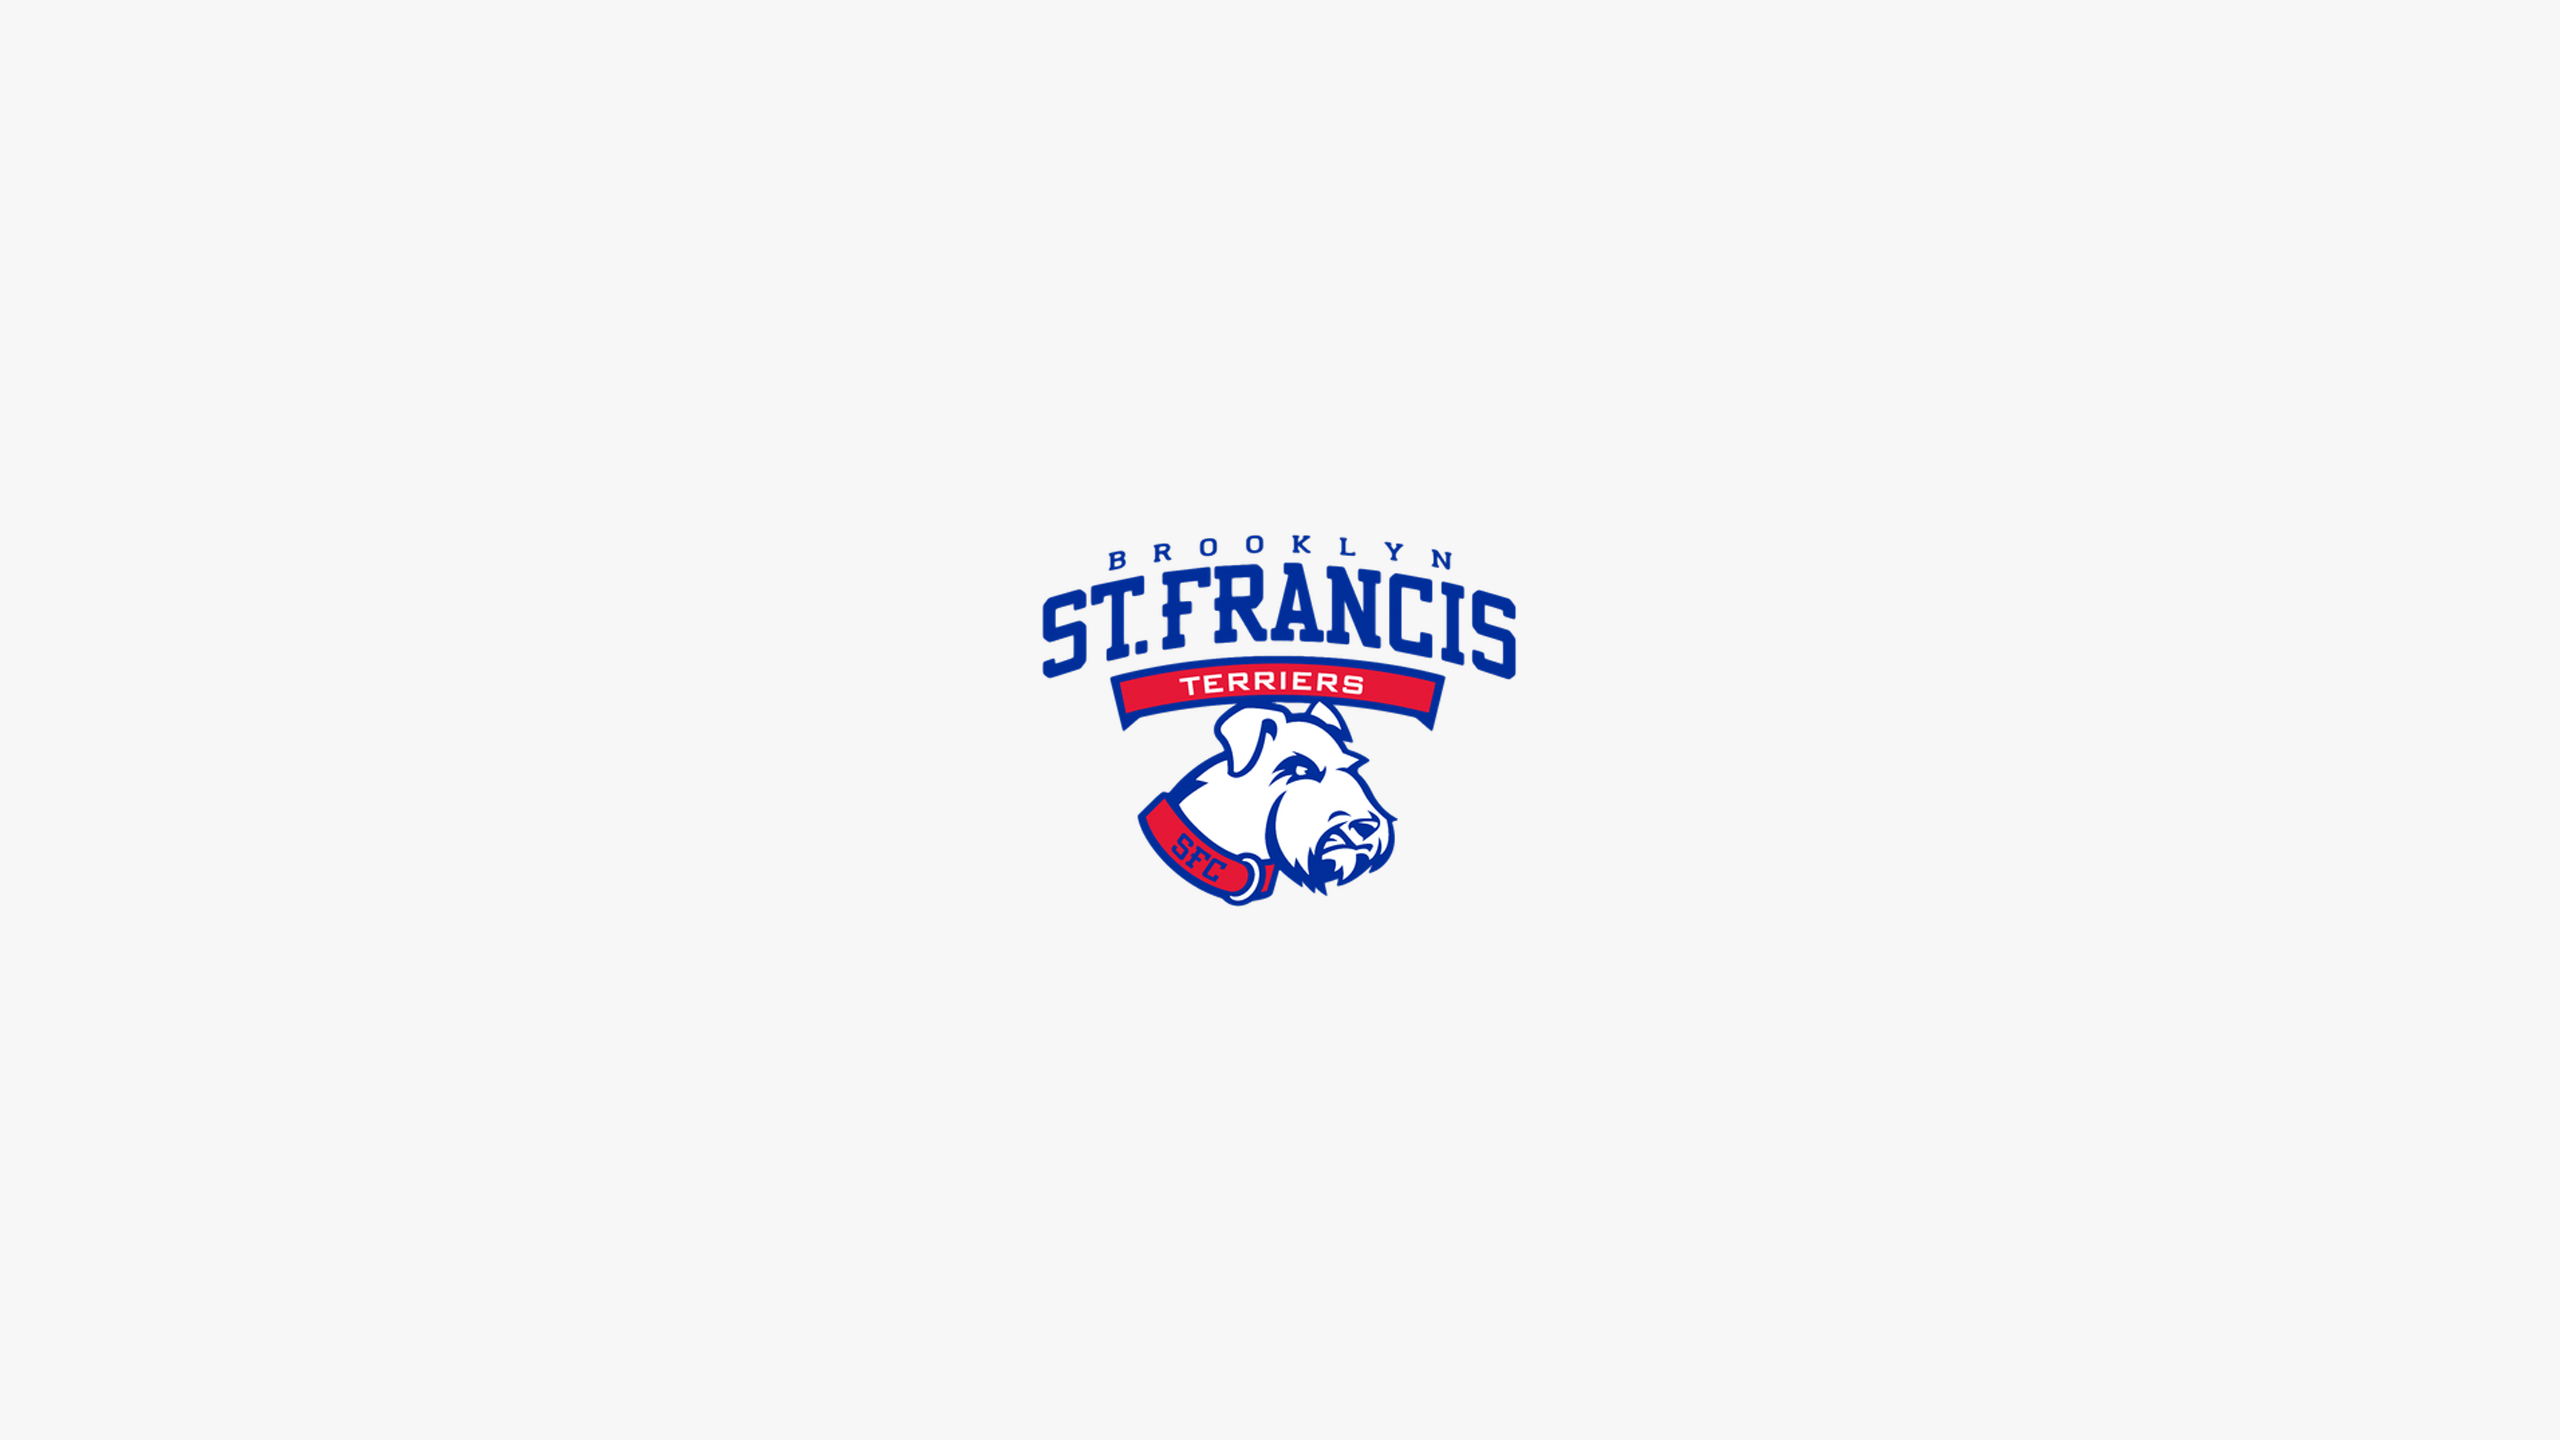 St. Francis (NY) College Terriers